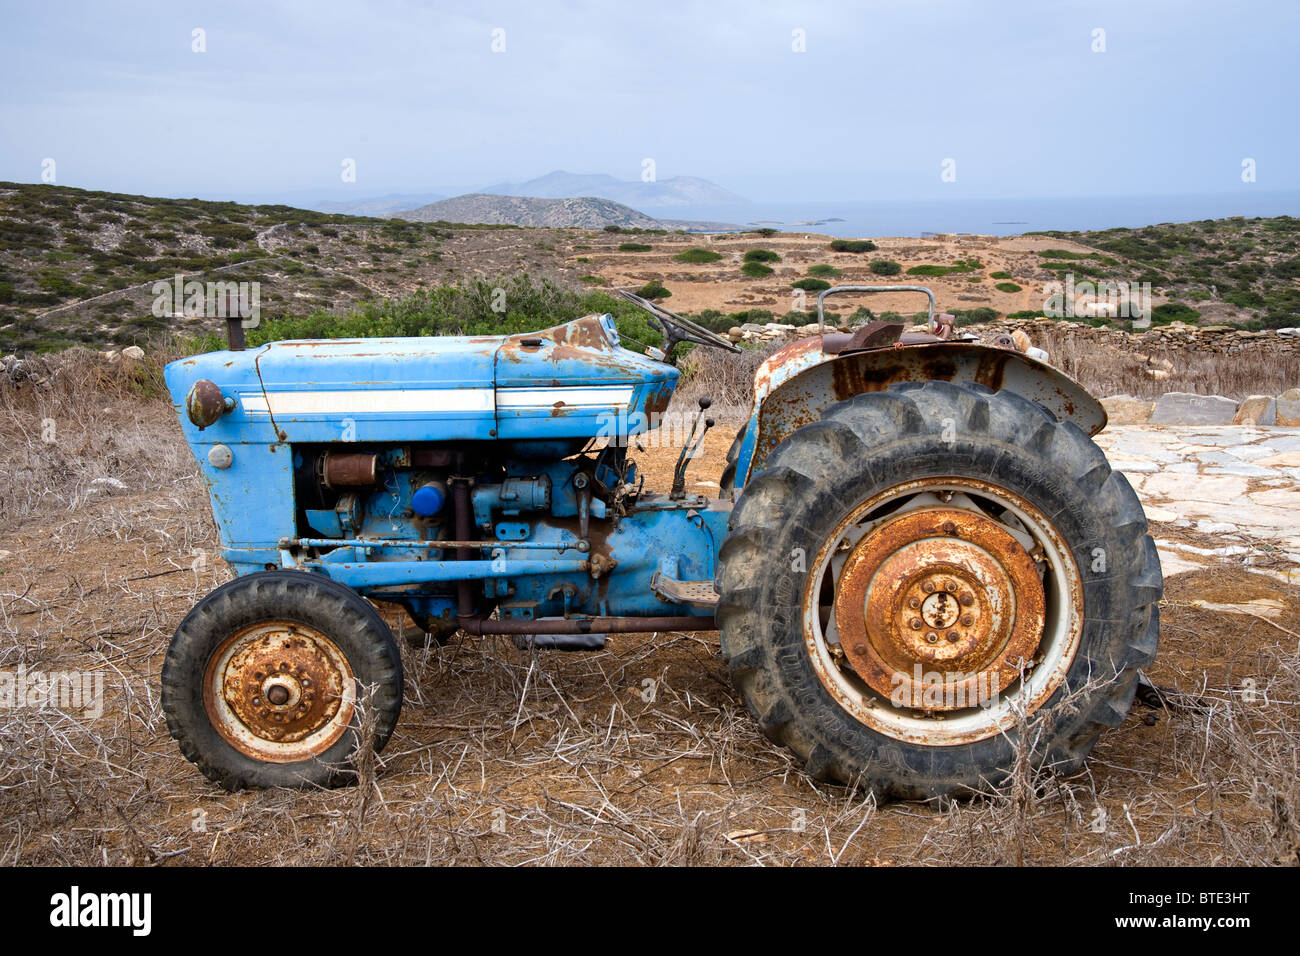 Old ford 2000 farm tractor in a field taken near arkesini on amorgos the